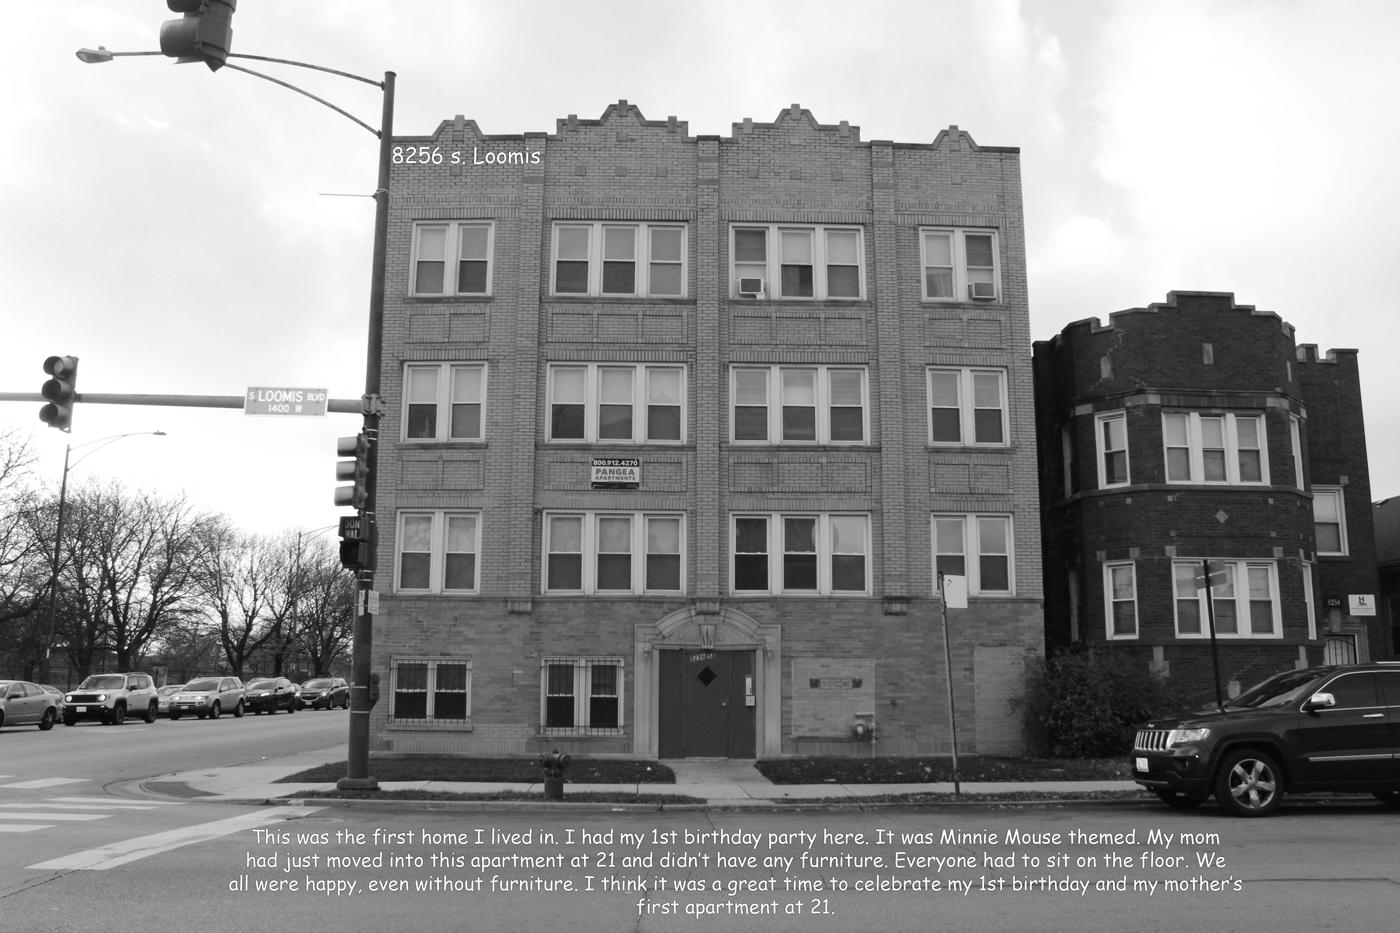 Image of a south side Chicago apartment building with four stories. It is brick with white framed windows.